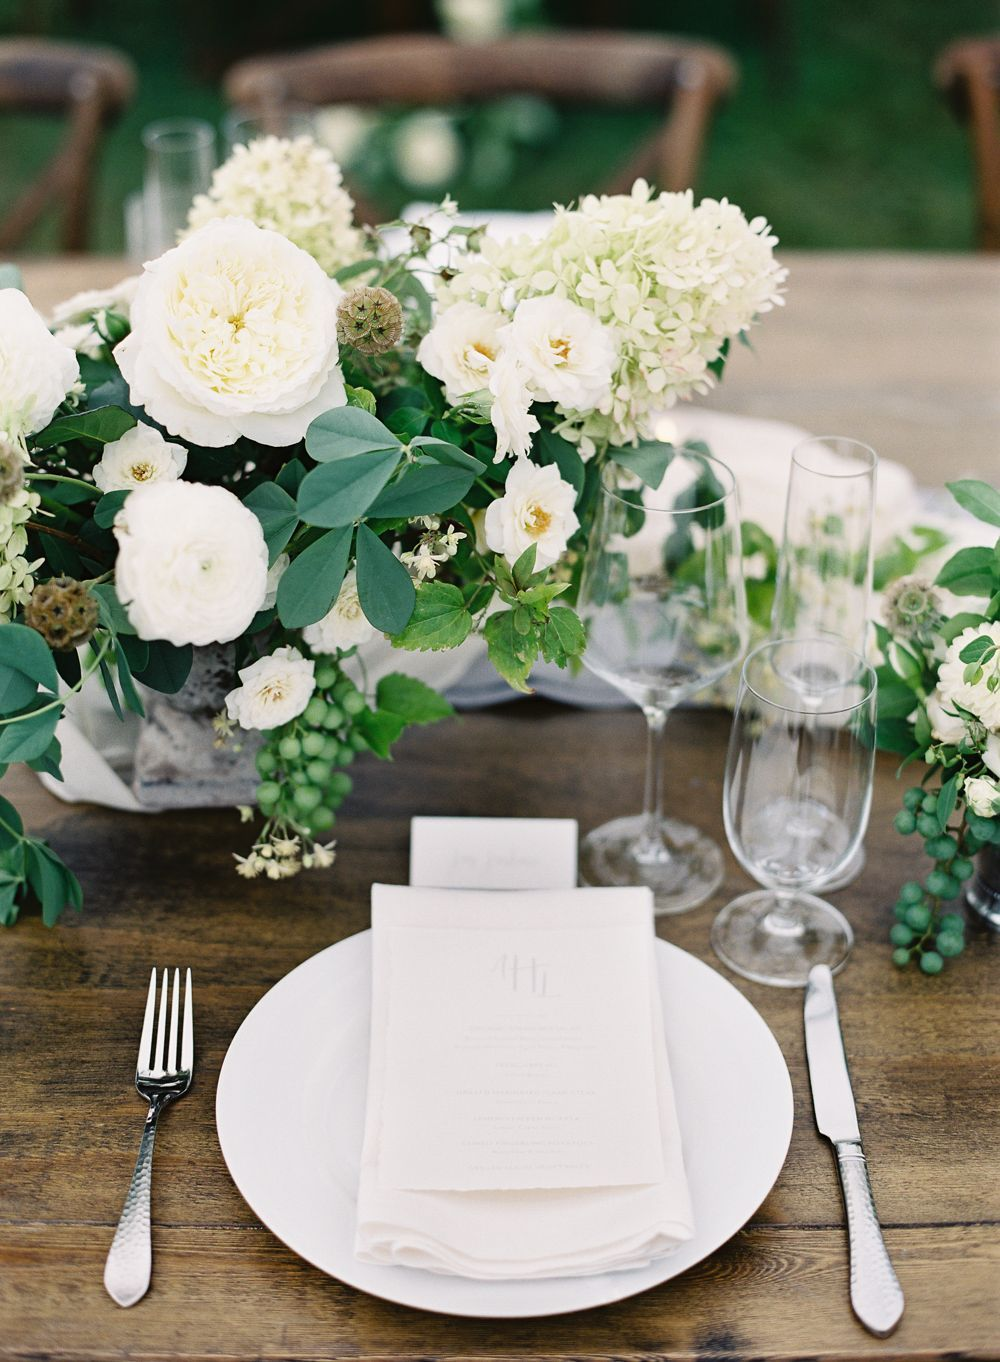 12-white-green-natural-wedding